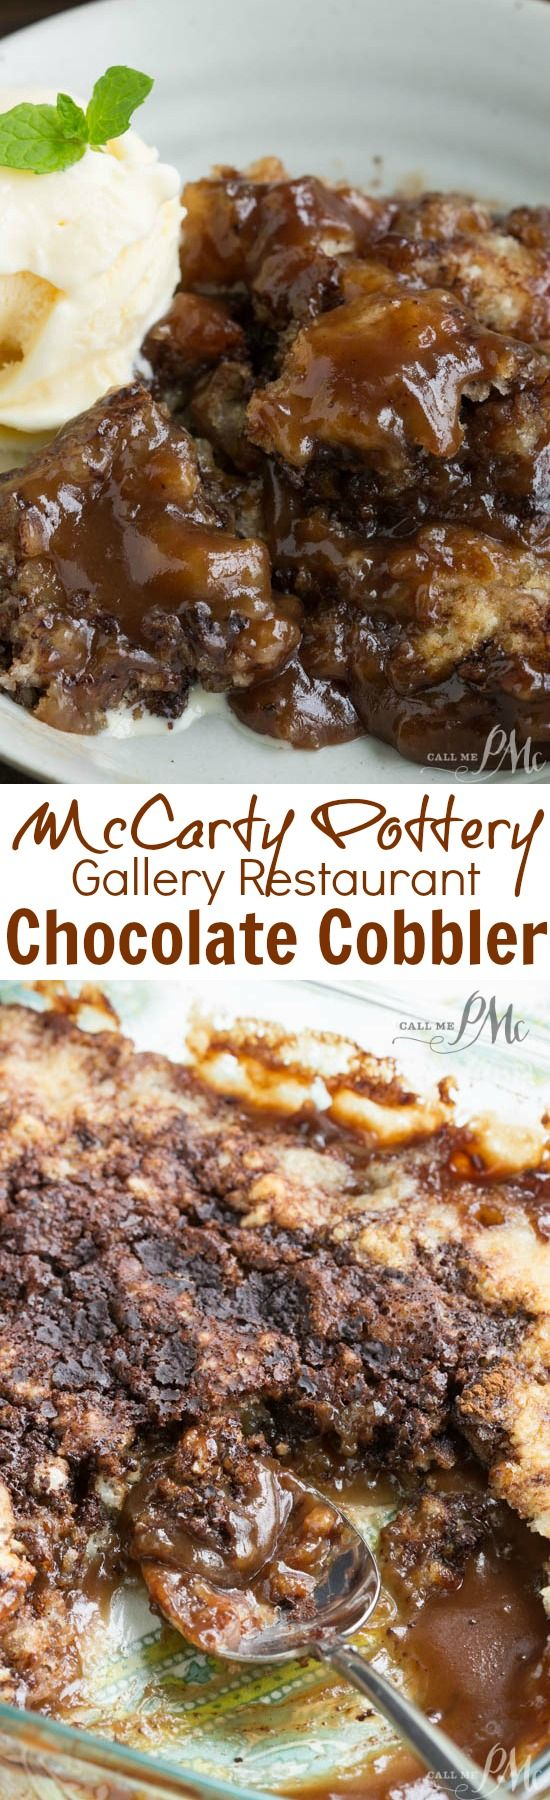 McCarty's Gallery Restaurant Chocolate Cobbler is has a buttery, tender crust and a melt-in-your-mouth chocolate sauce. This is a simple layered dessert that's easy as 1 2 3.